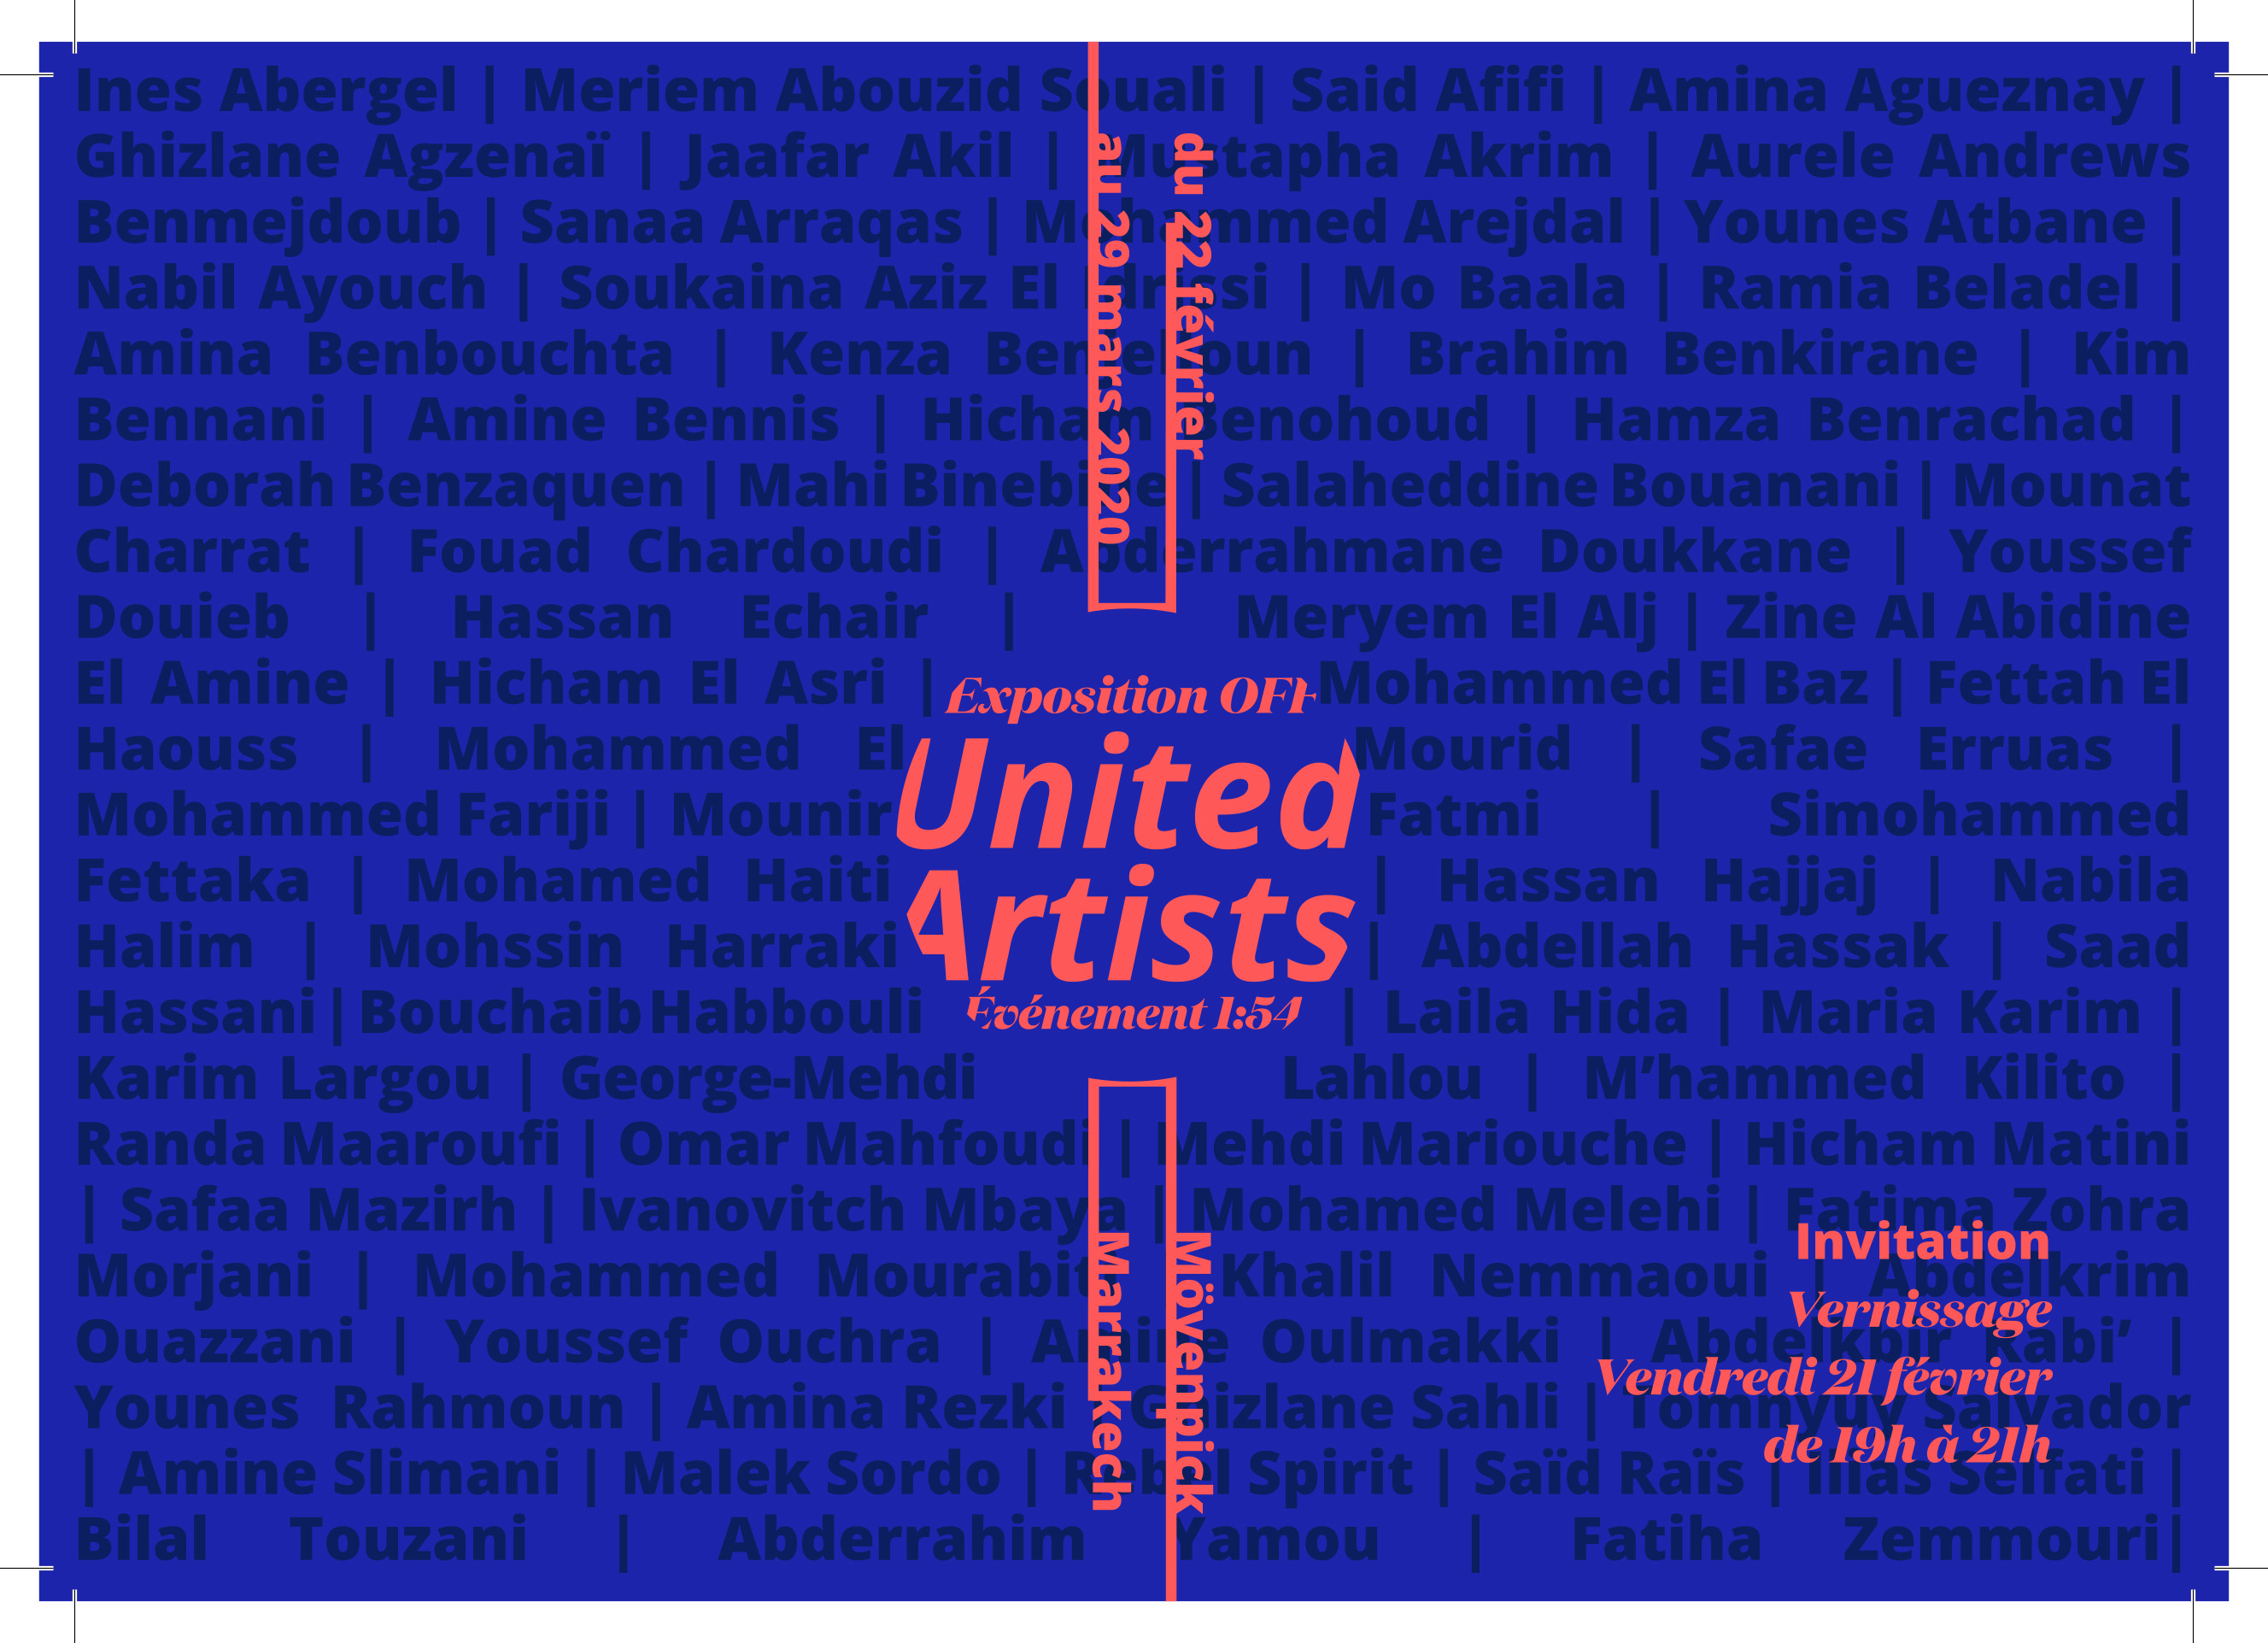 United Artists Group show Marrakech